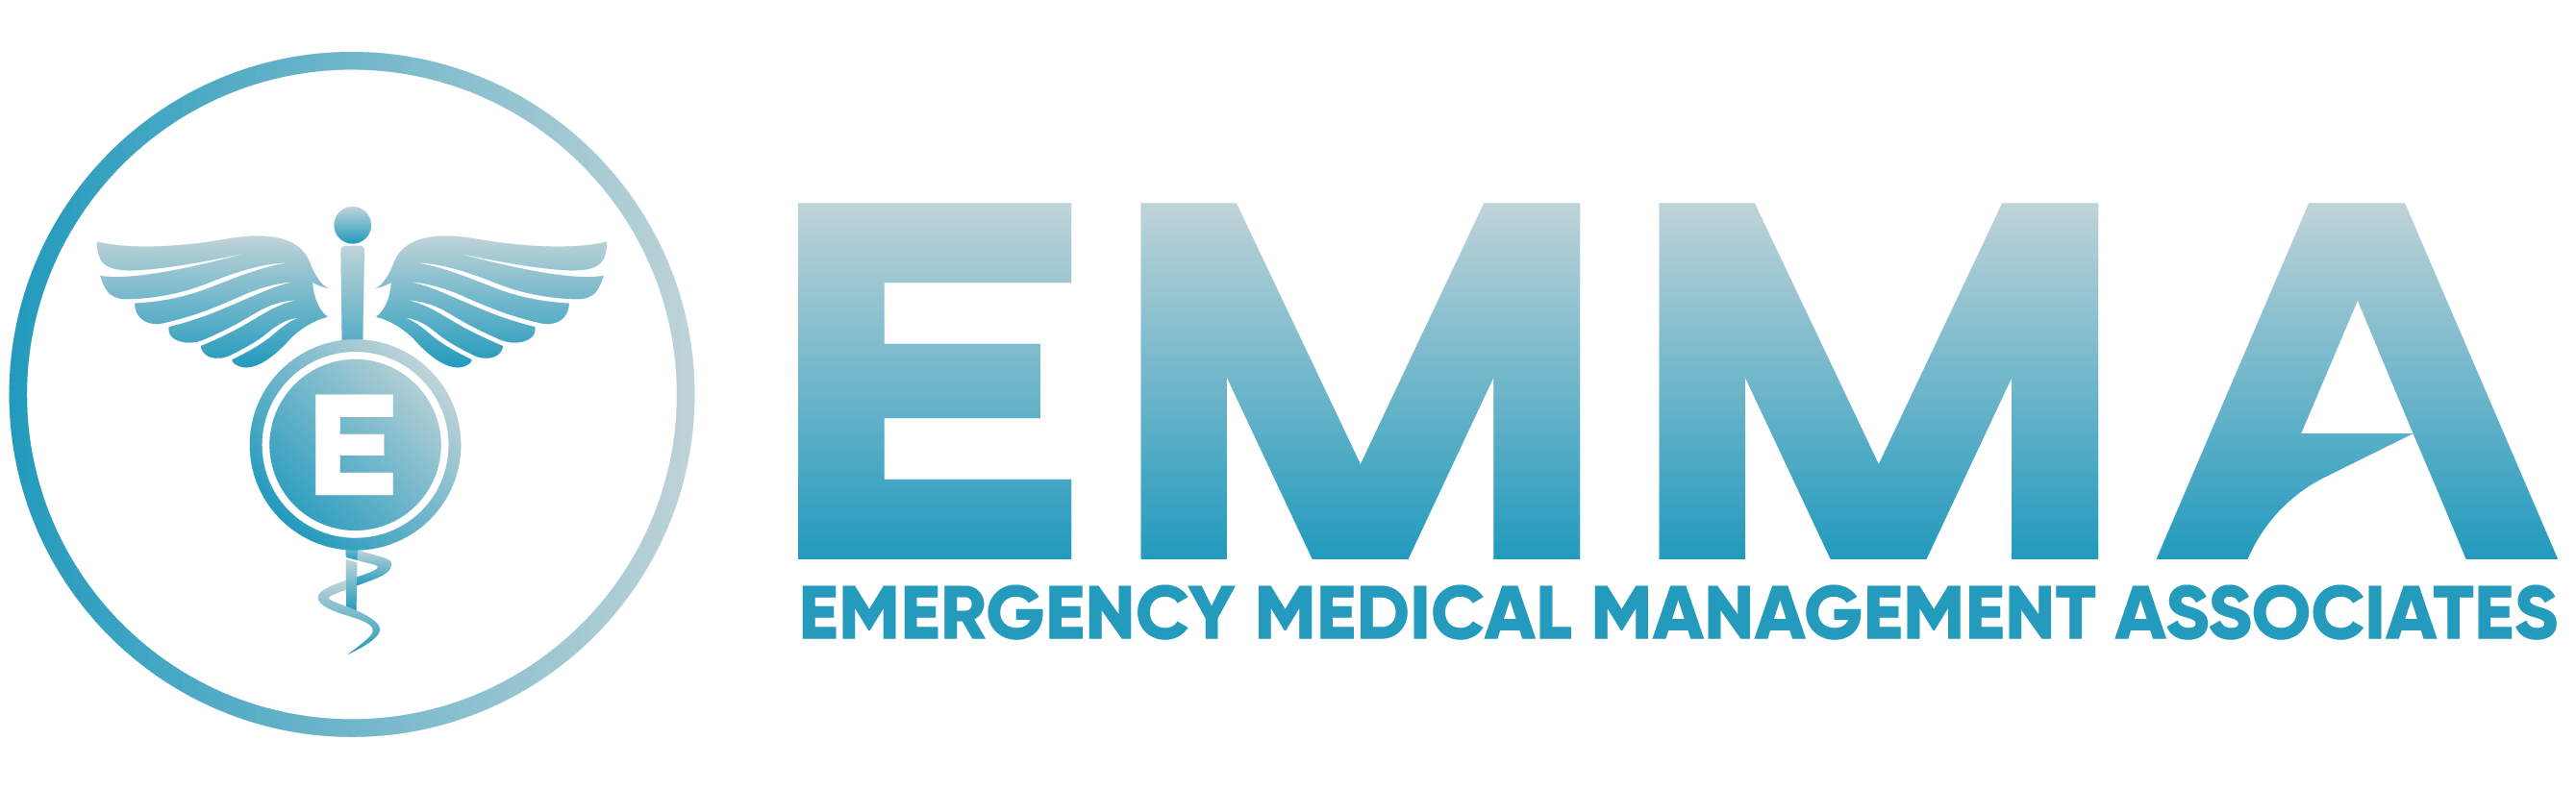 EMMA - Emergency Medical Management Associates